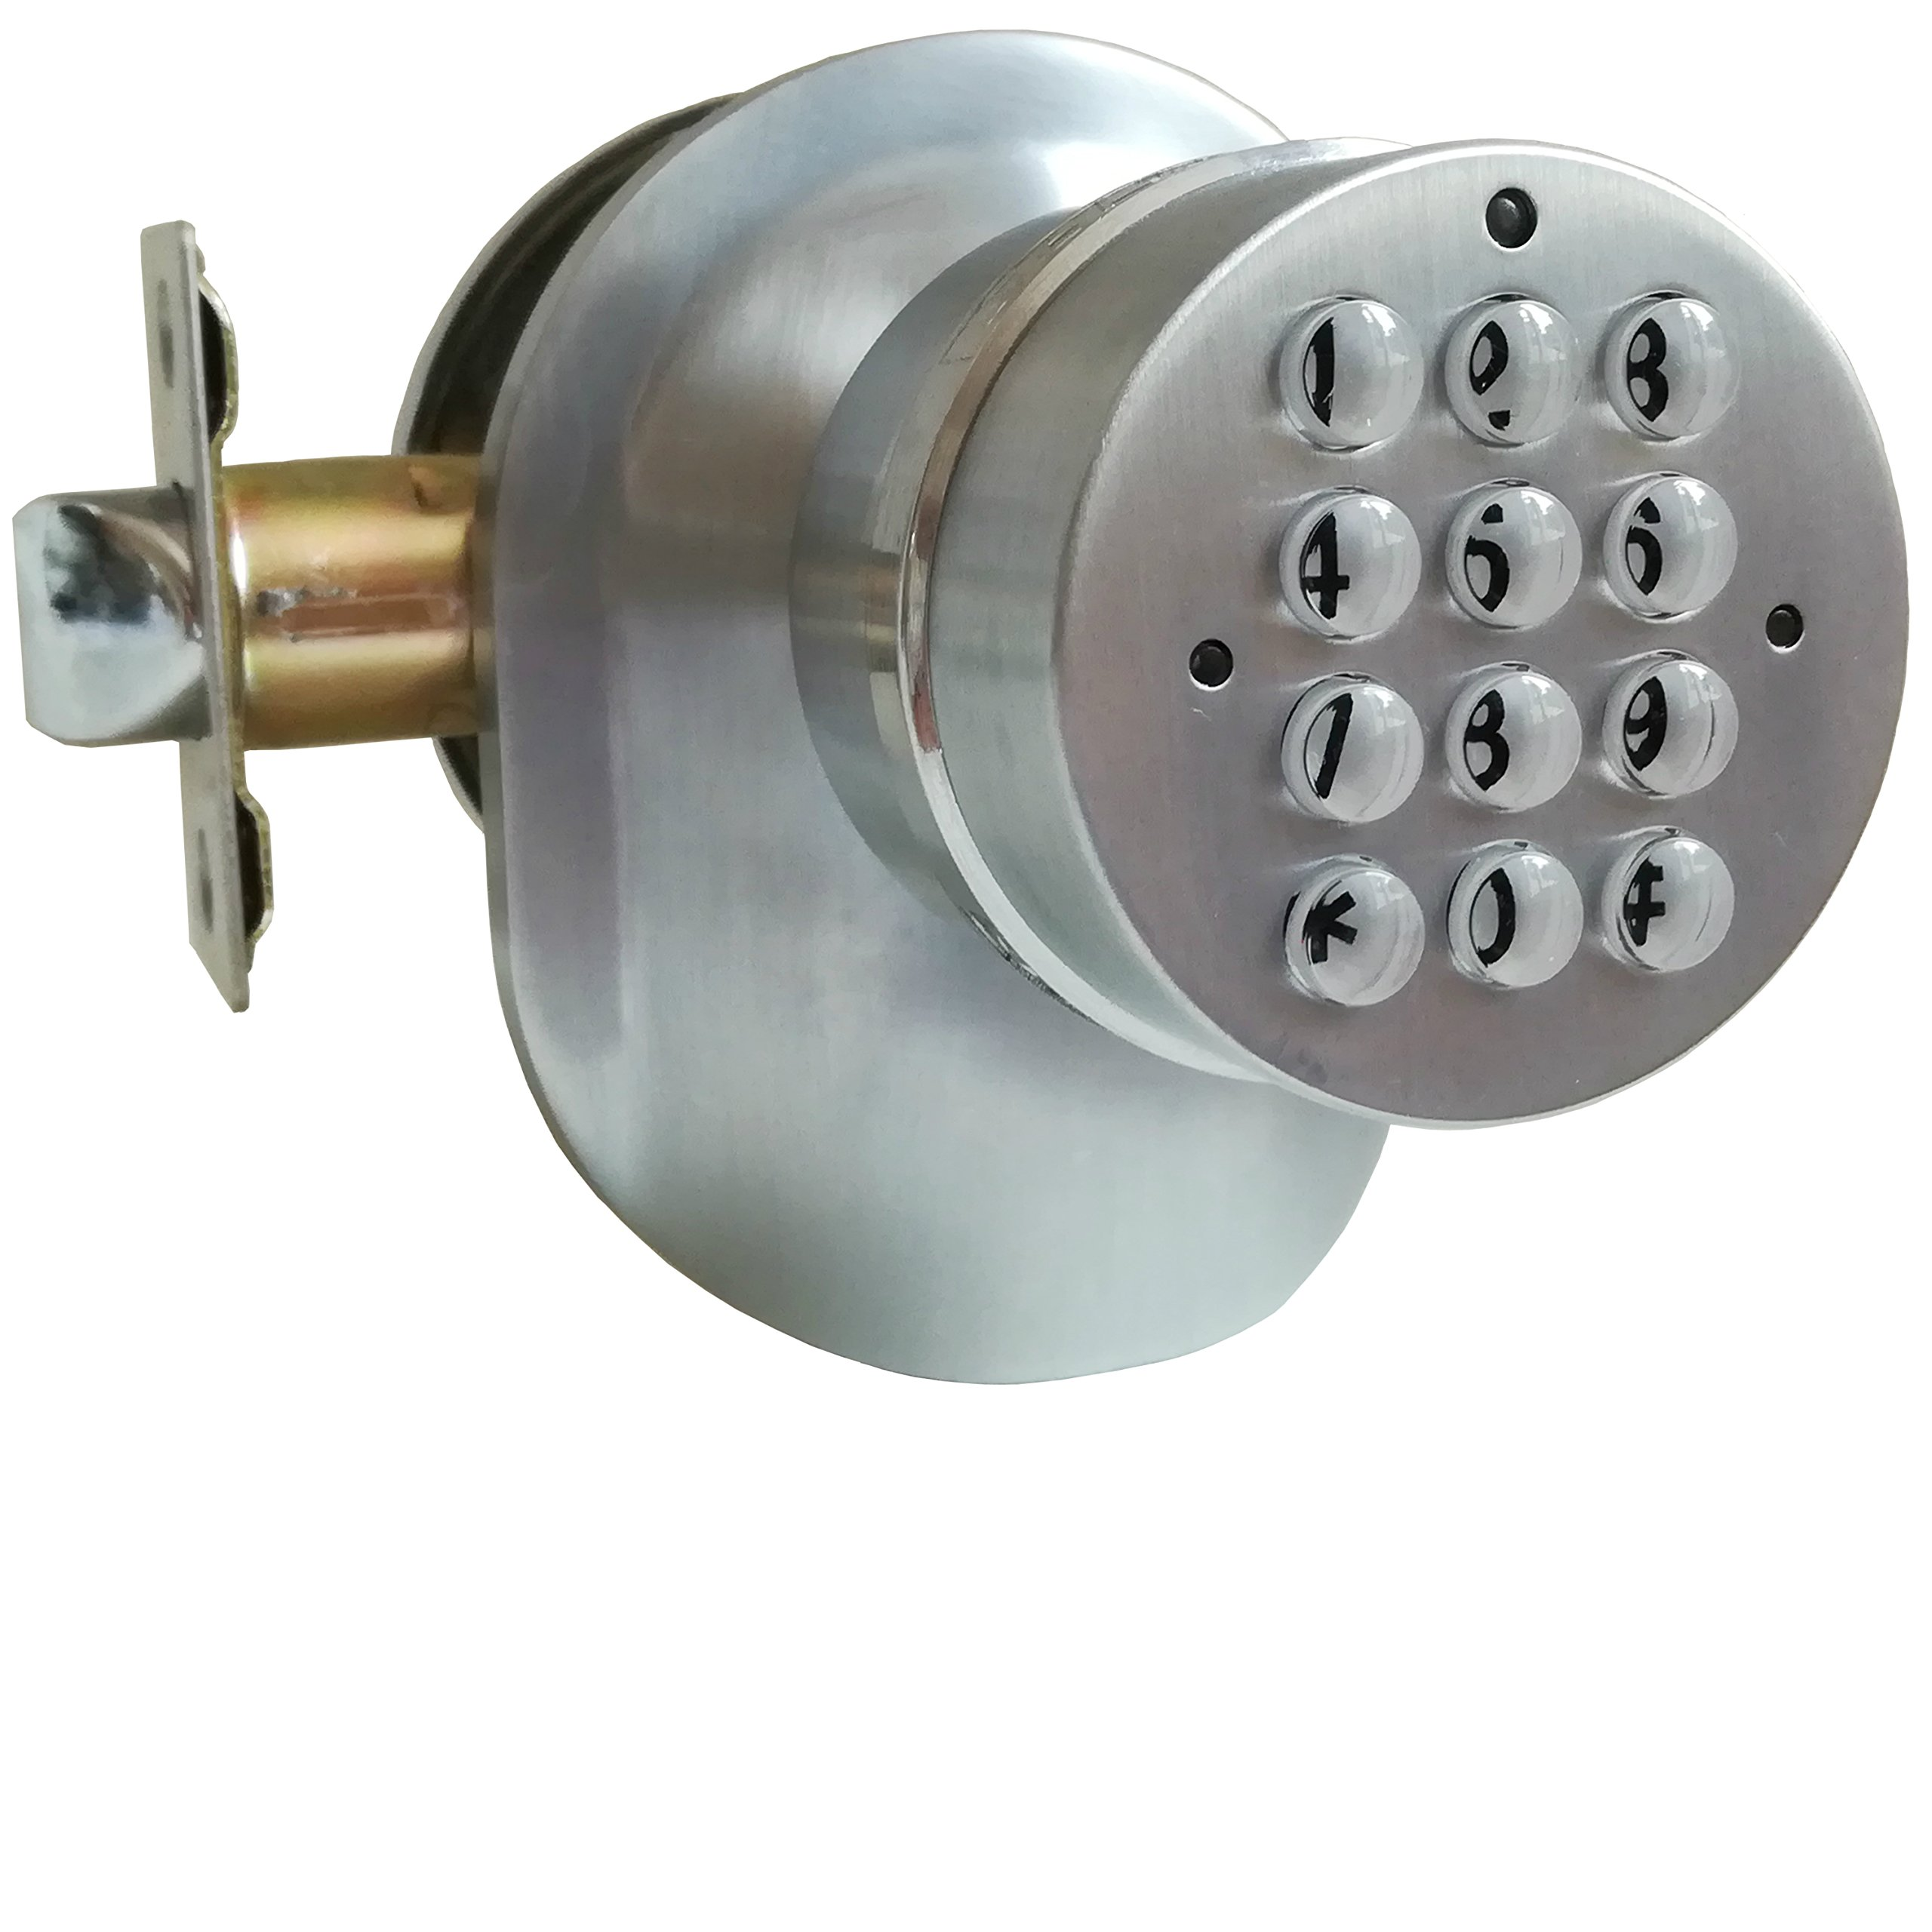 SoHoMiLL Electronic Door Knob with Backup Mechanical Key (Spring Latch LOCK; Not Deadbolt; Not Phone Connected), Satin Nickel, YL 99 B